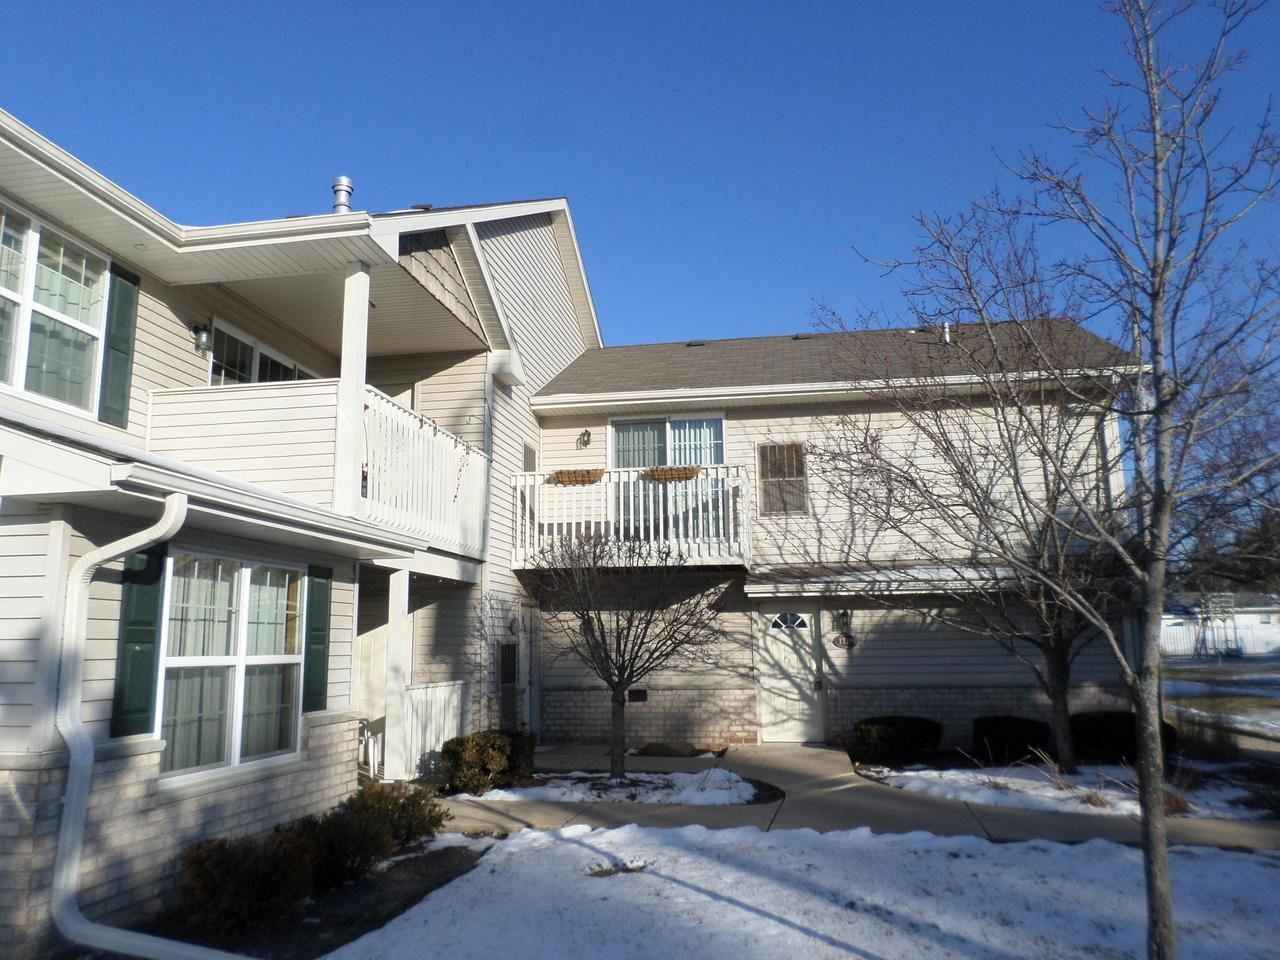 1719 State St #C 44, Union Grove, WI 53182 - MLS#: 1673520